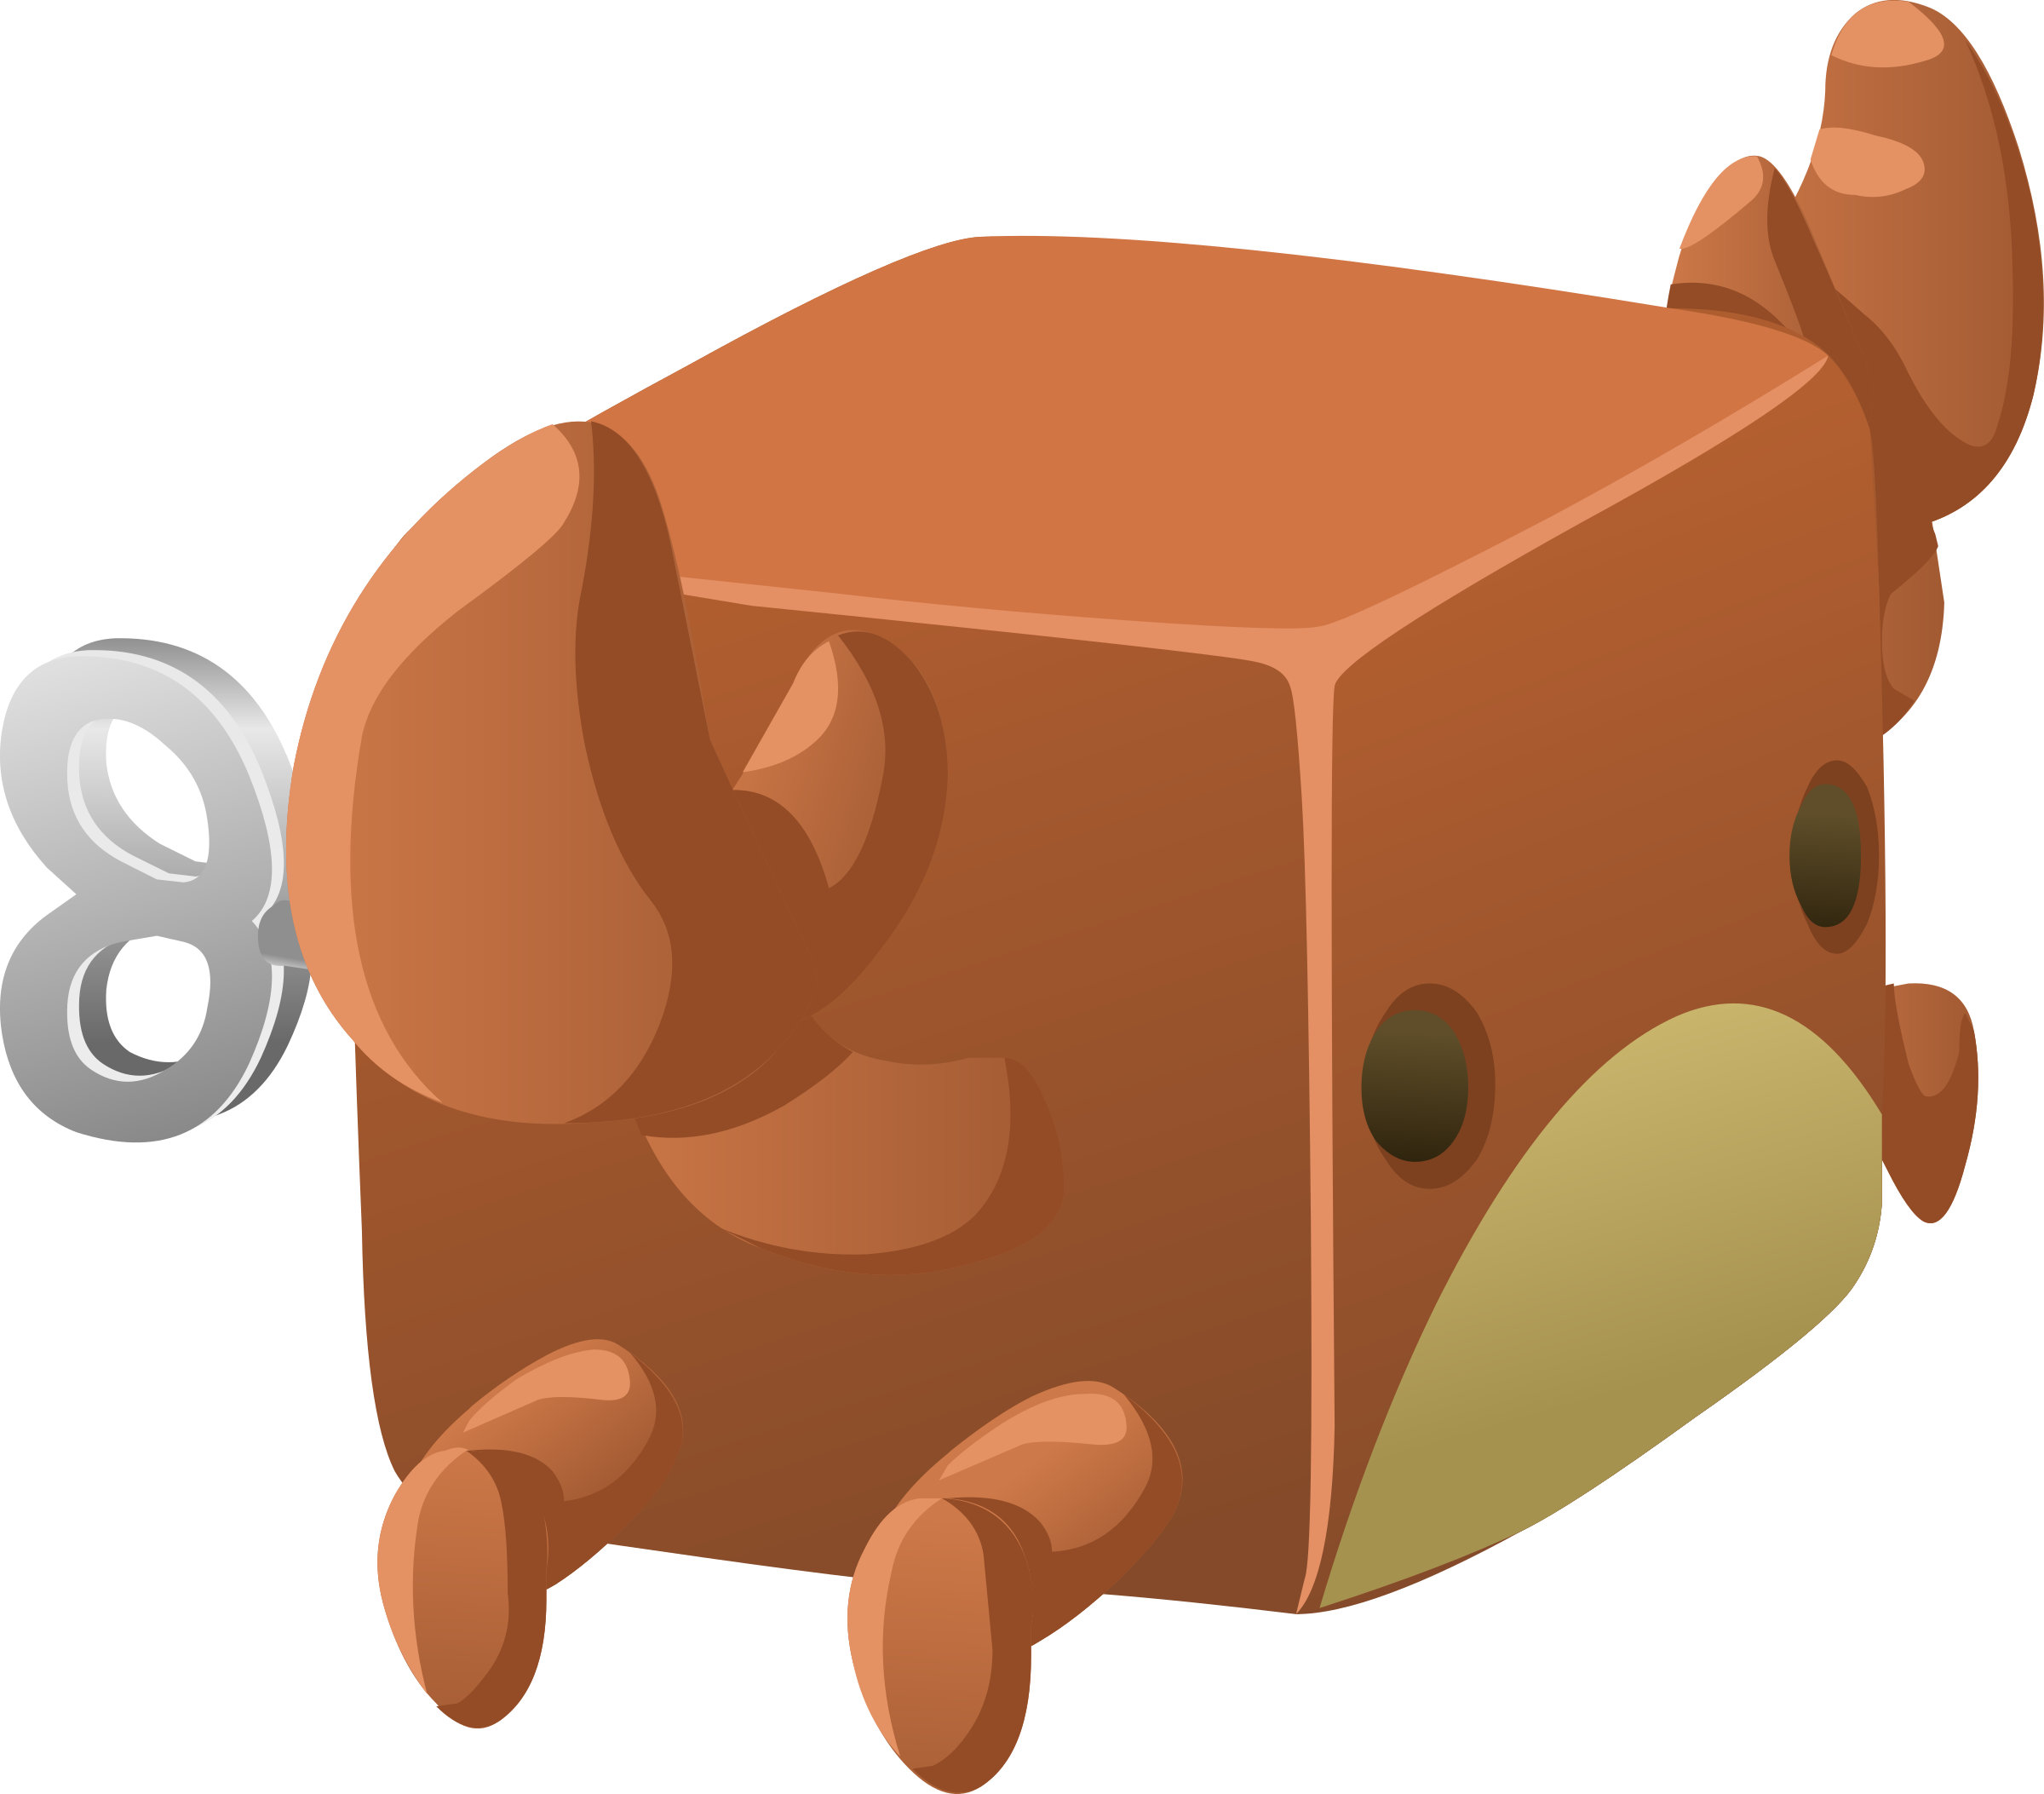 Cubimal Npc Crab by glitch